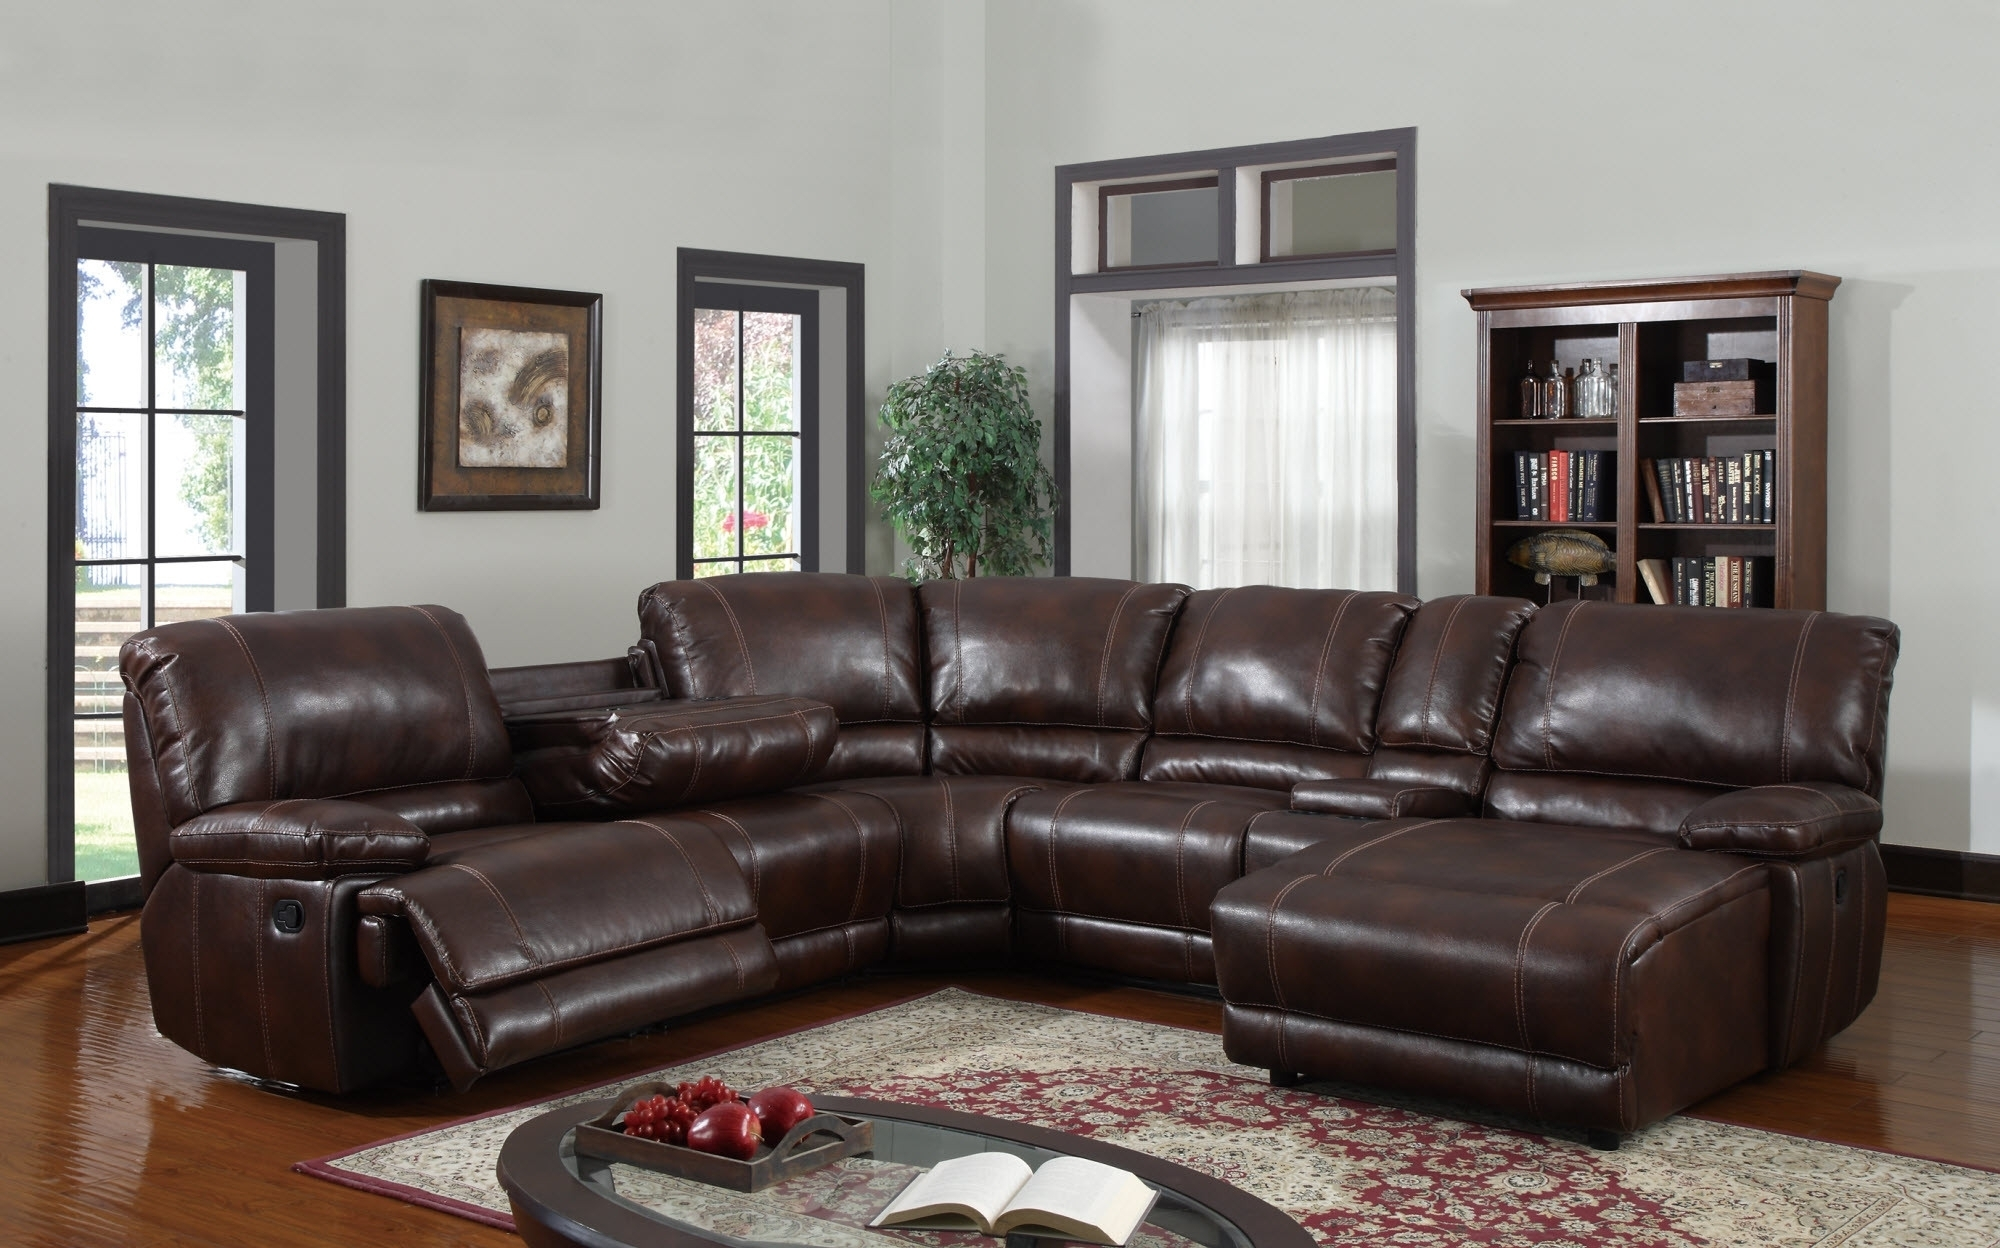 6 Piece Sectional Sofa Leather • Sectional Sofa in 6 Piece Leather Sectional Sofas